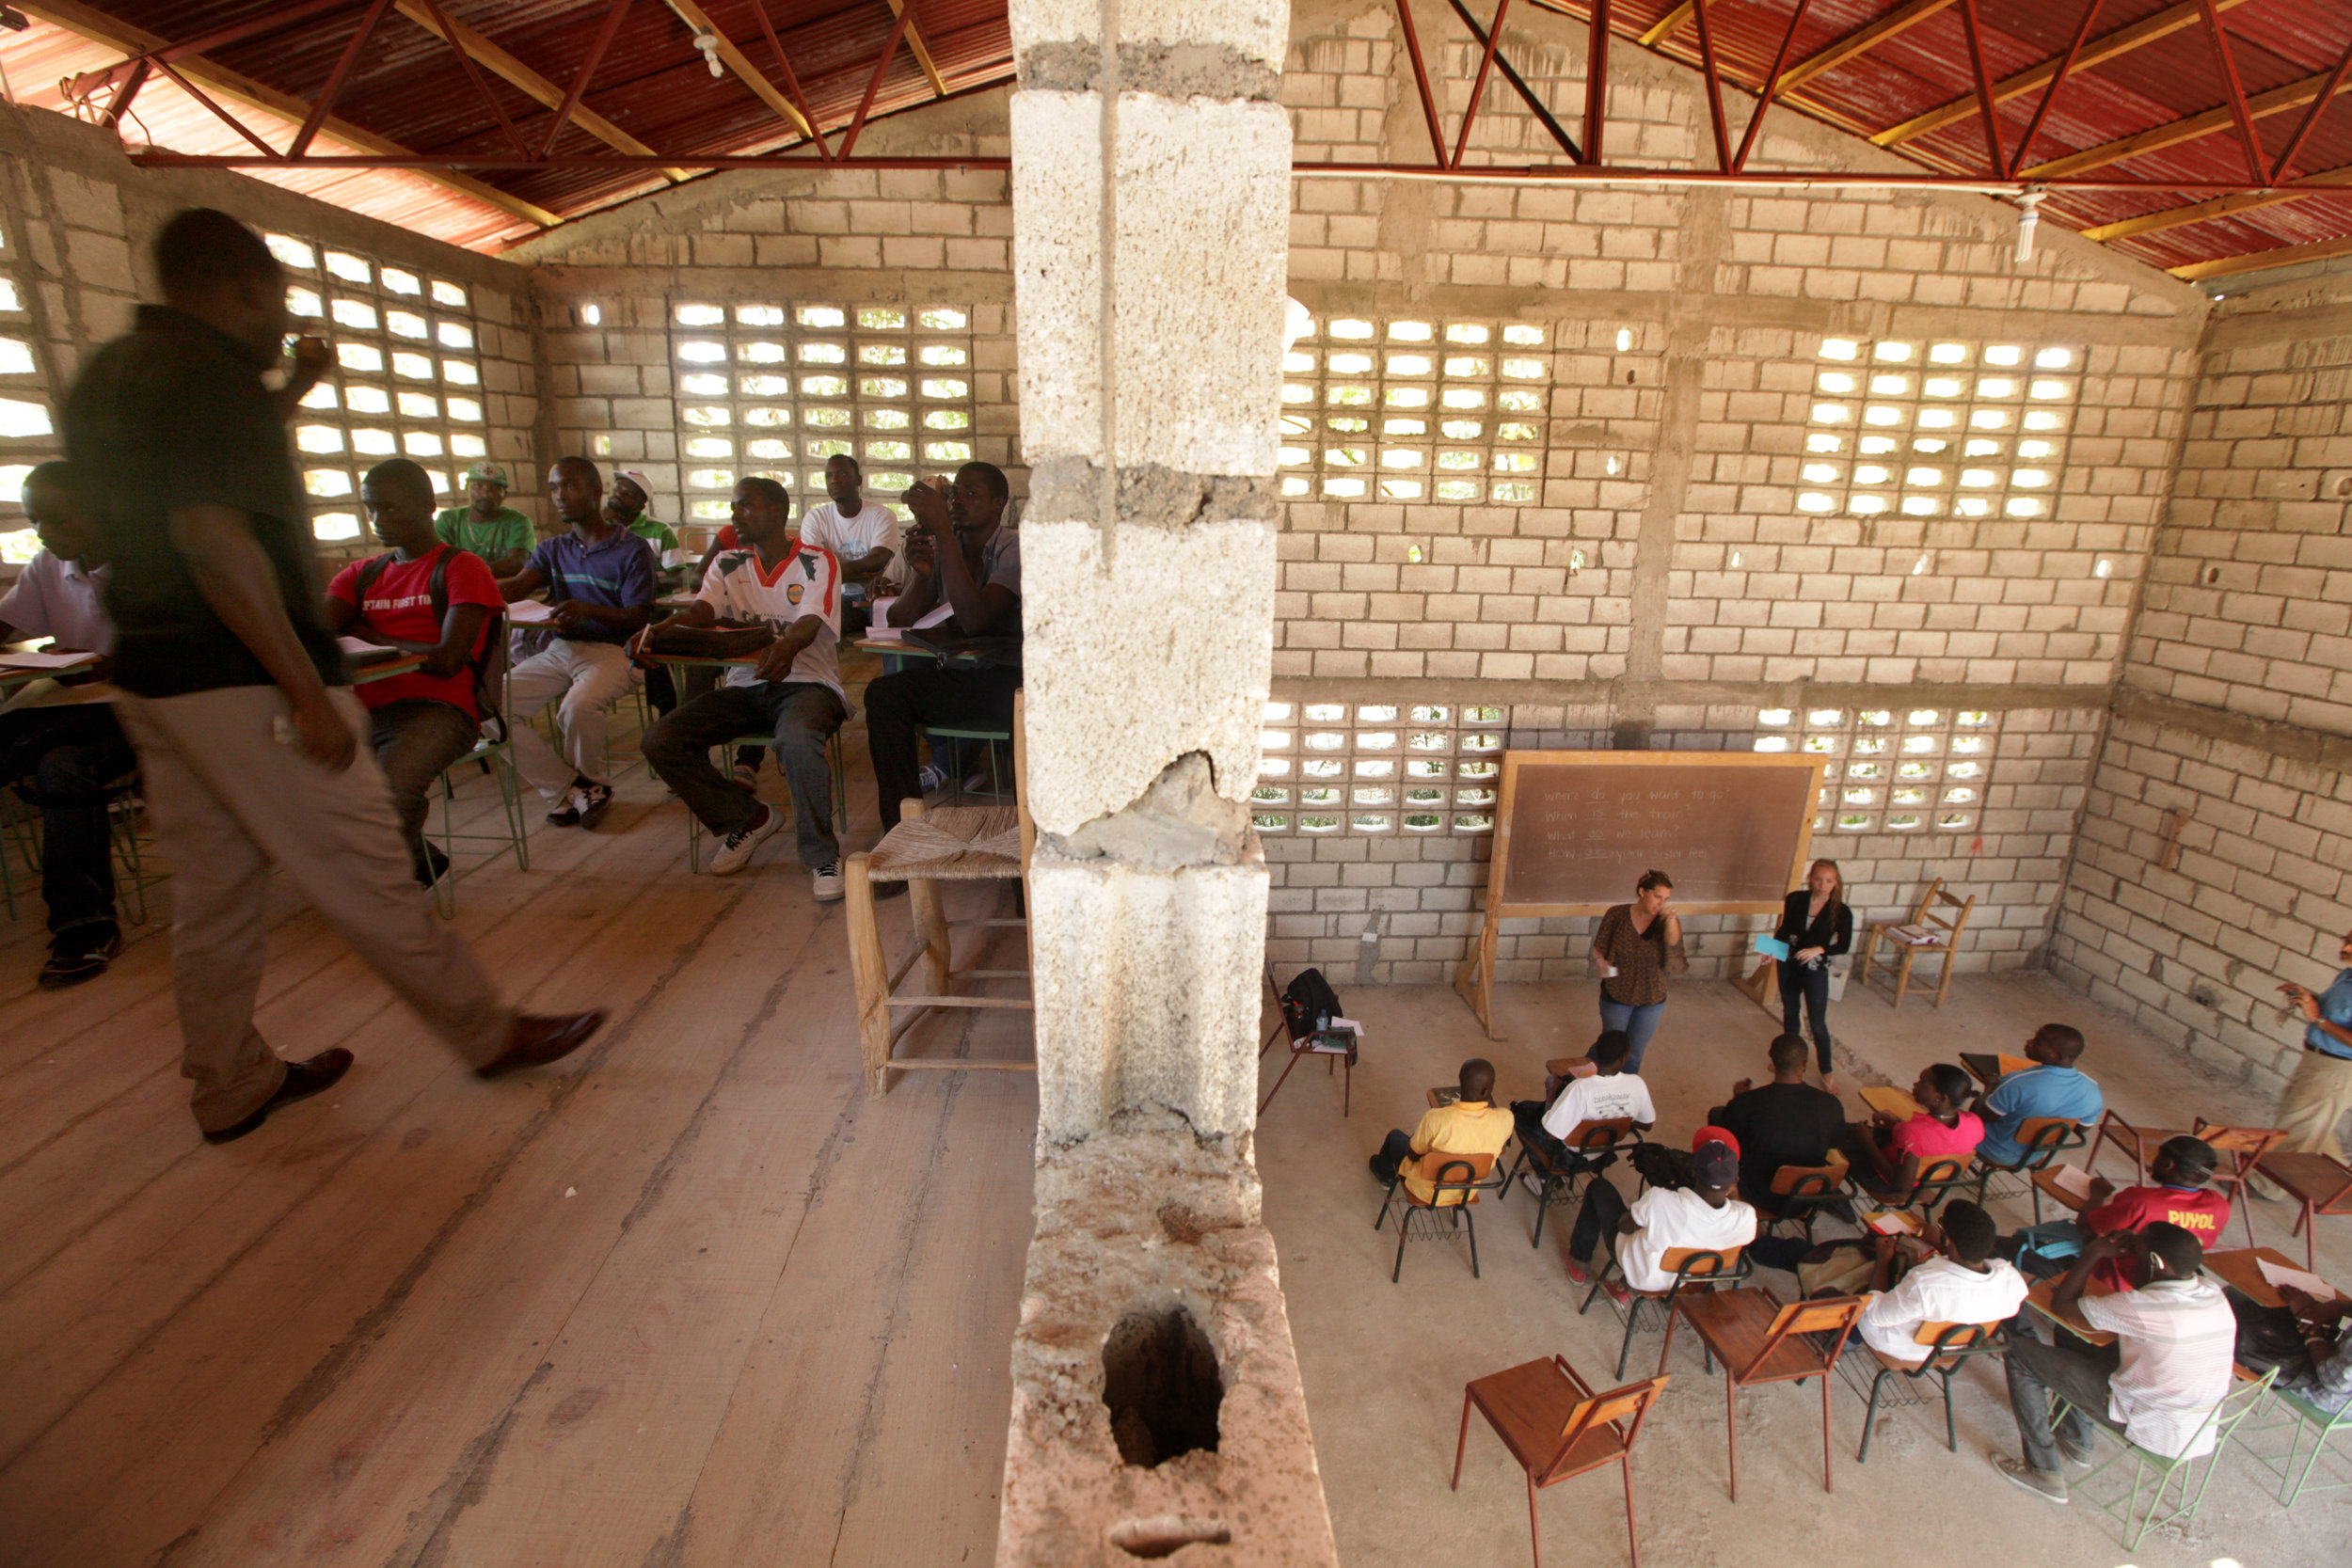 Rithot Thilus, left, teaches a class on business skills at Groupe d'Accord Solidarité Action professional trade school.